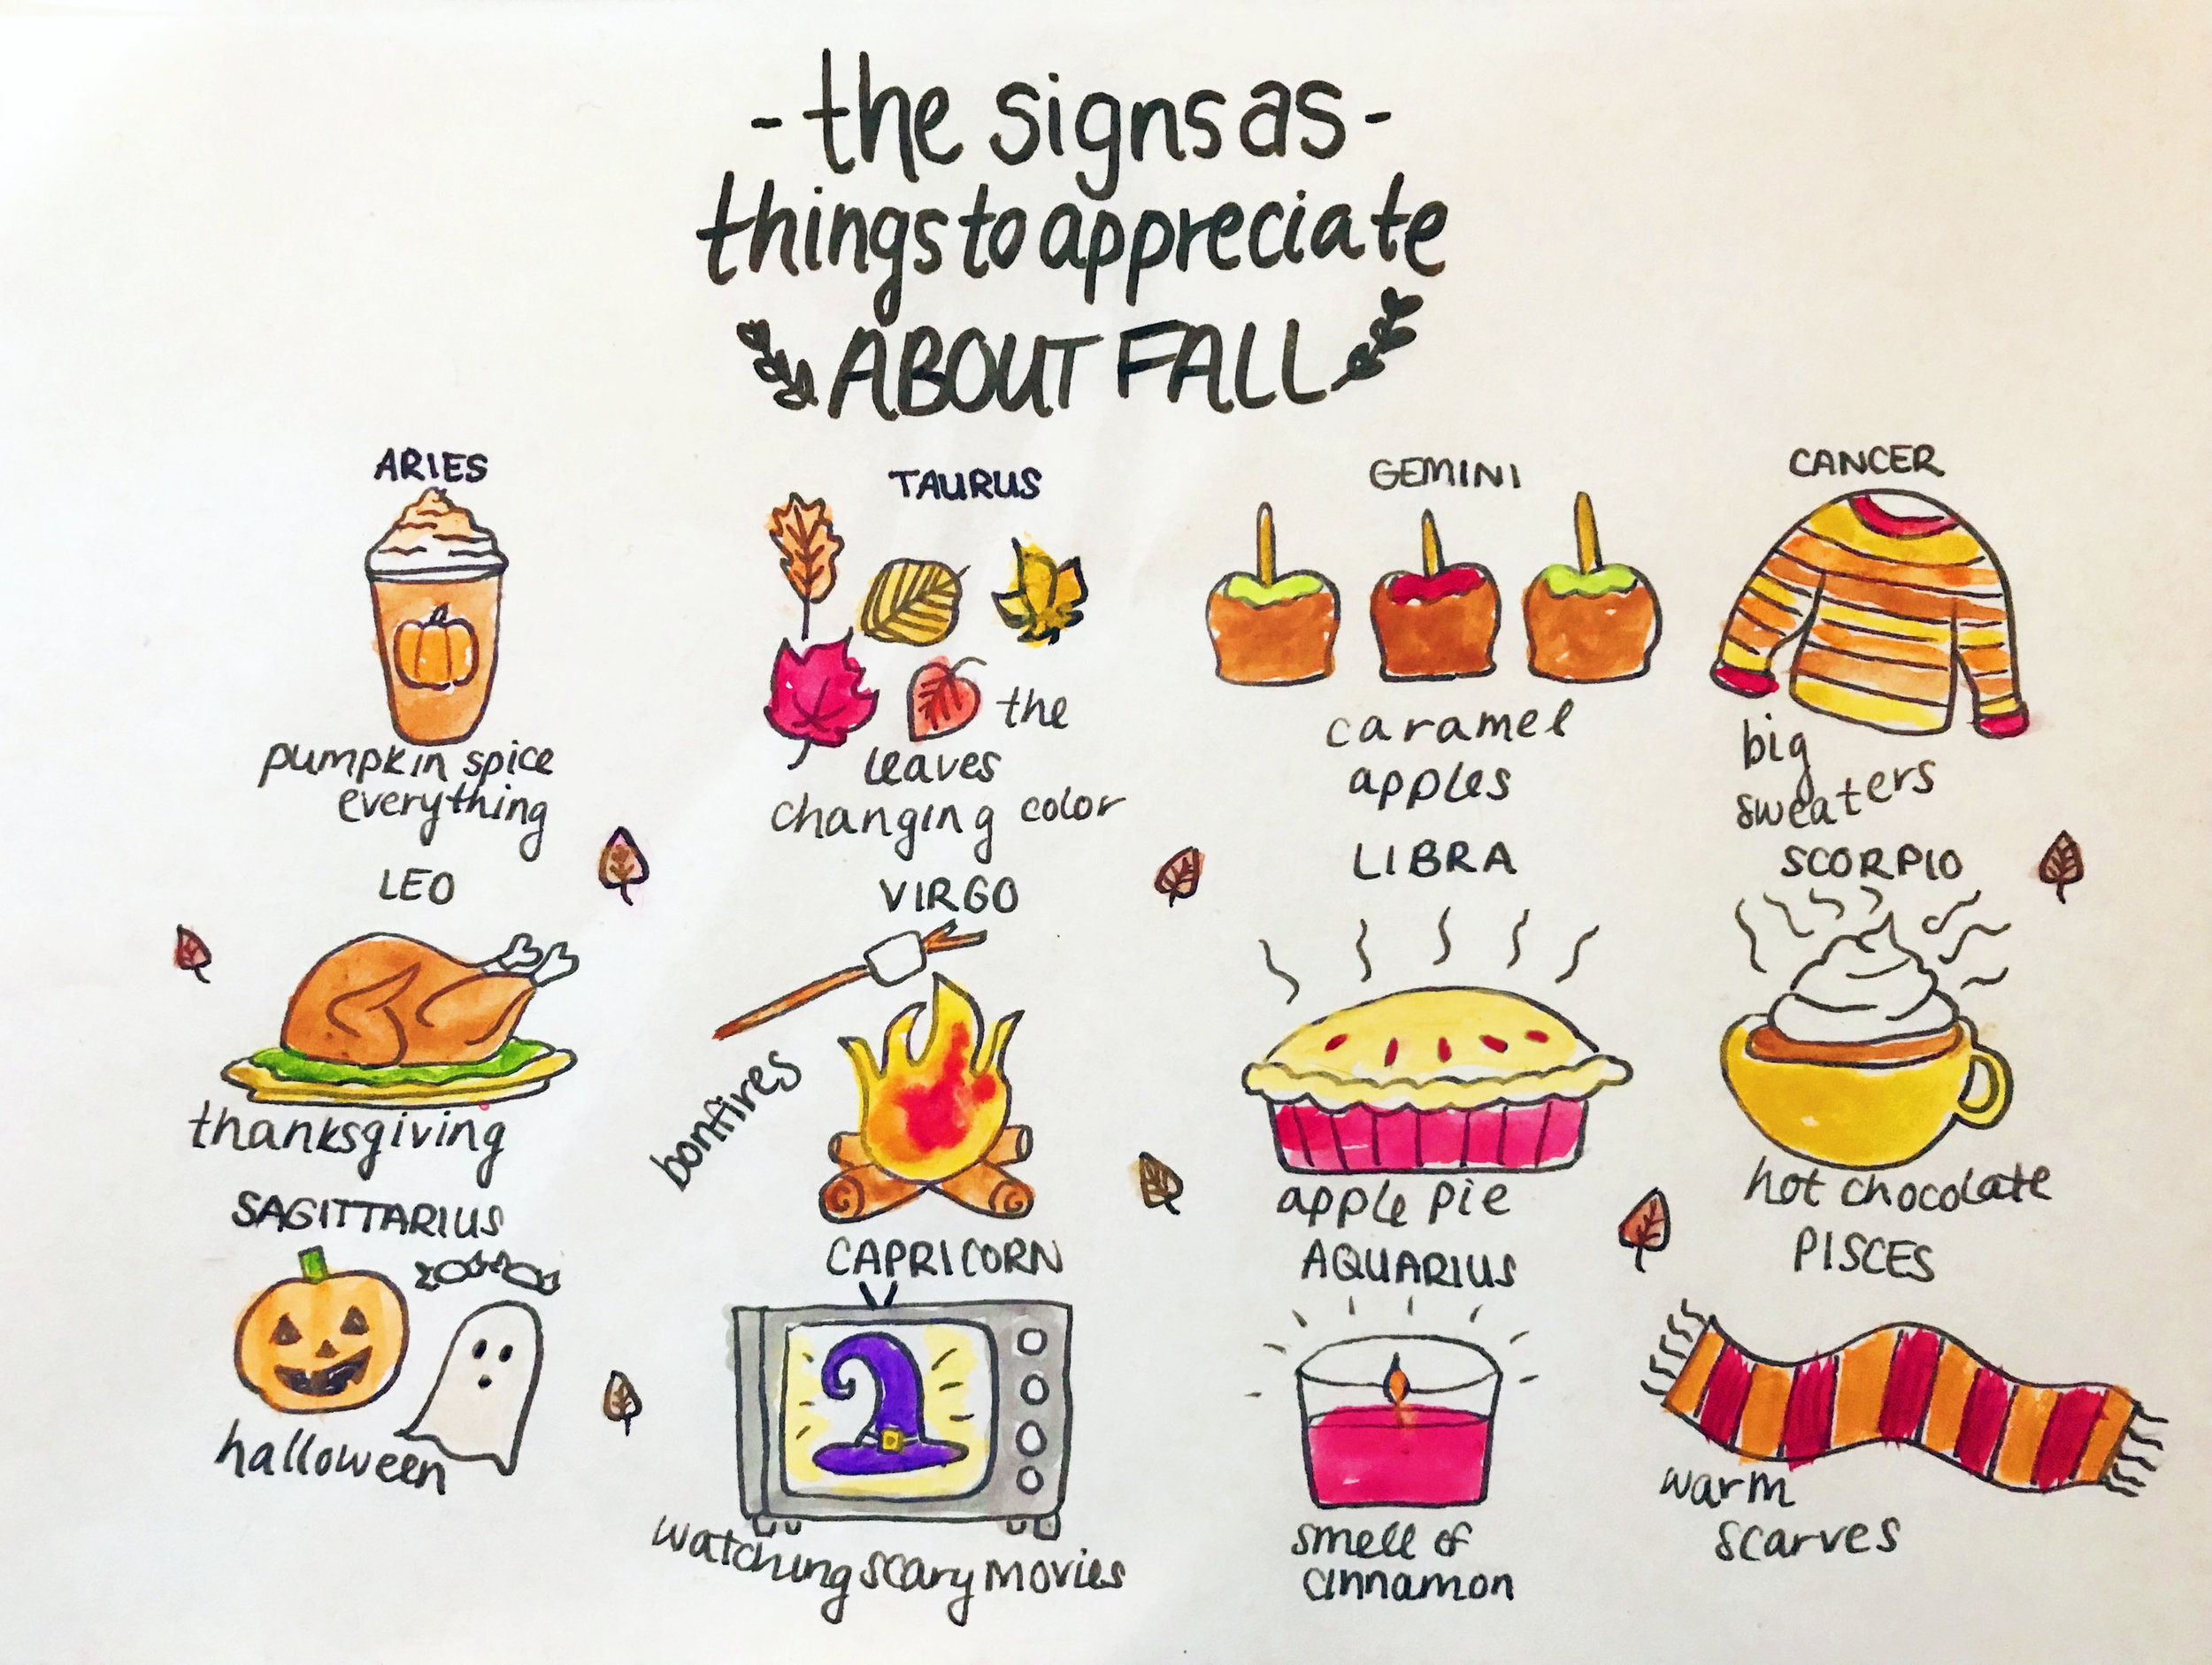 a casual appreciation post for autumn featuring the signs